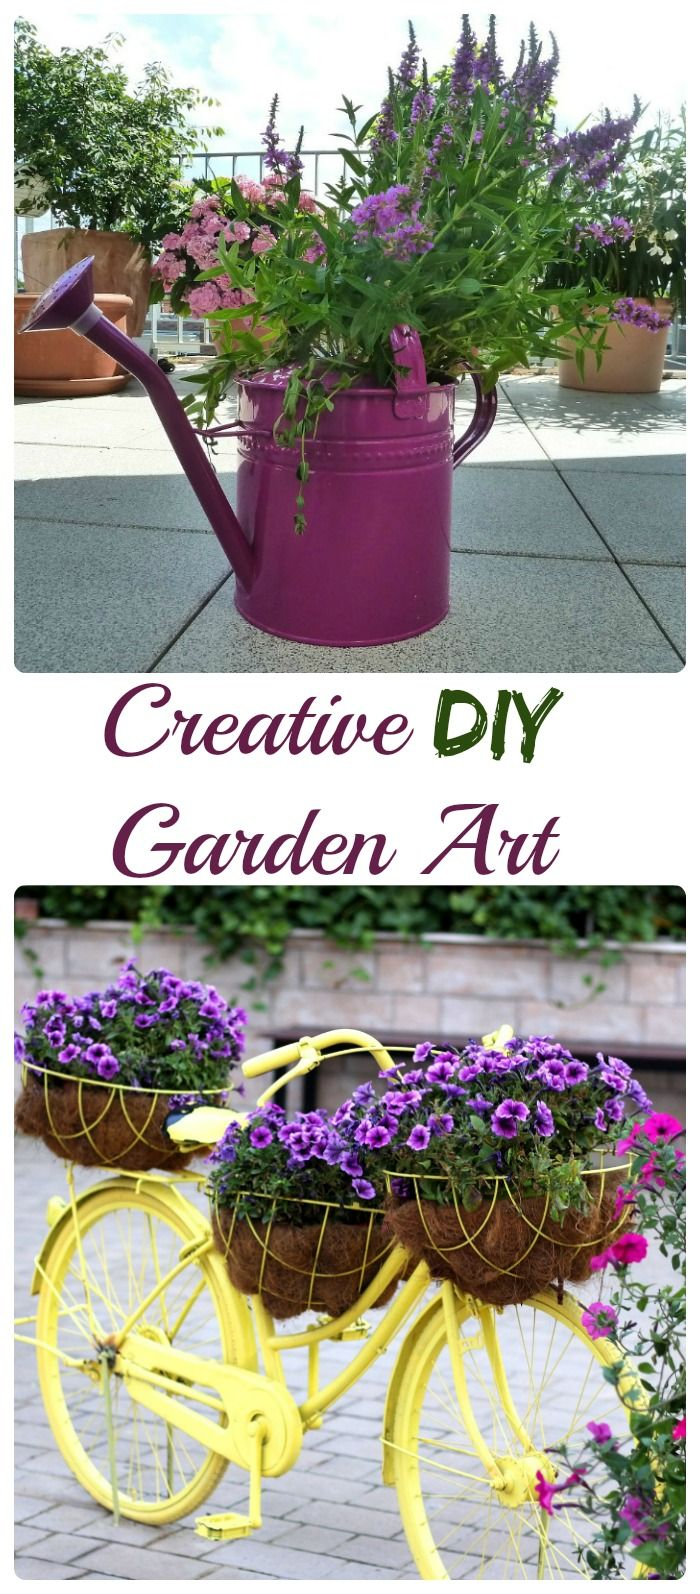 Garden Art Creative Ideas By Recycling Garden Art Household